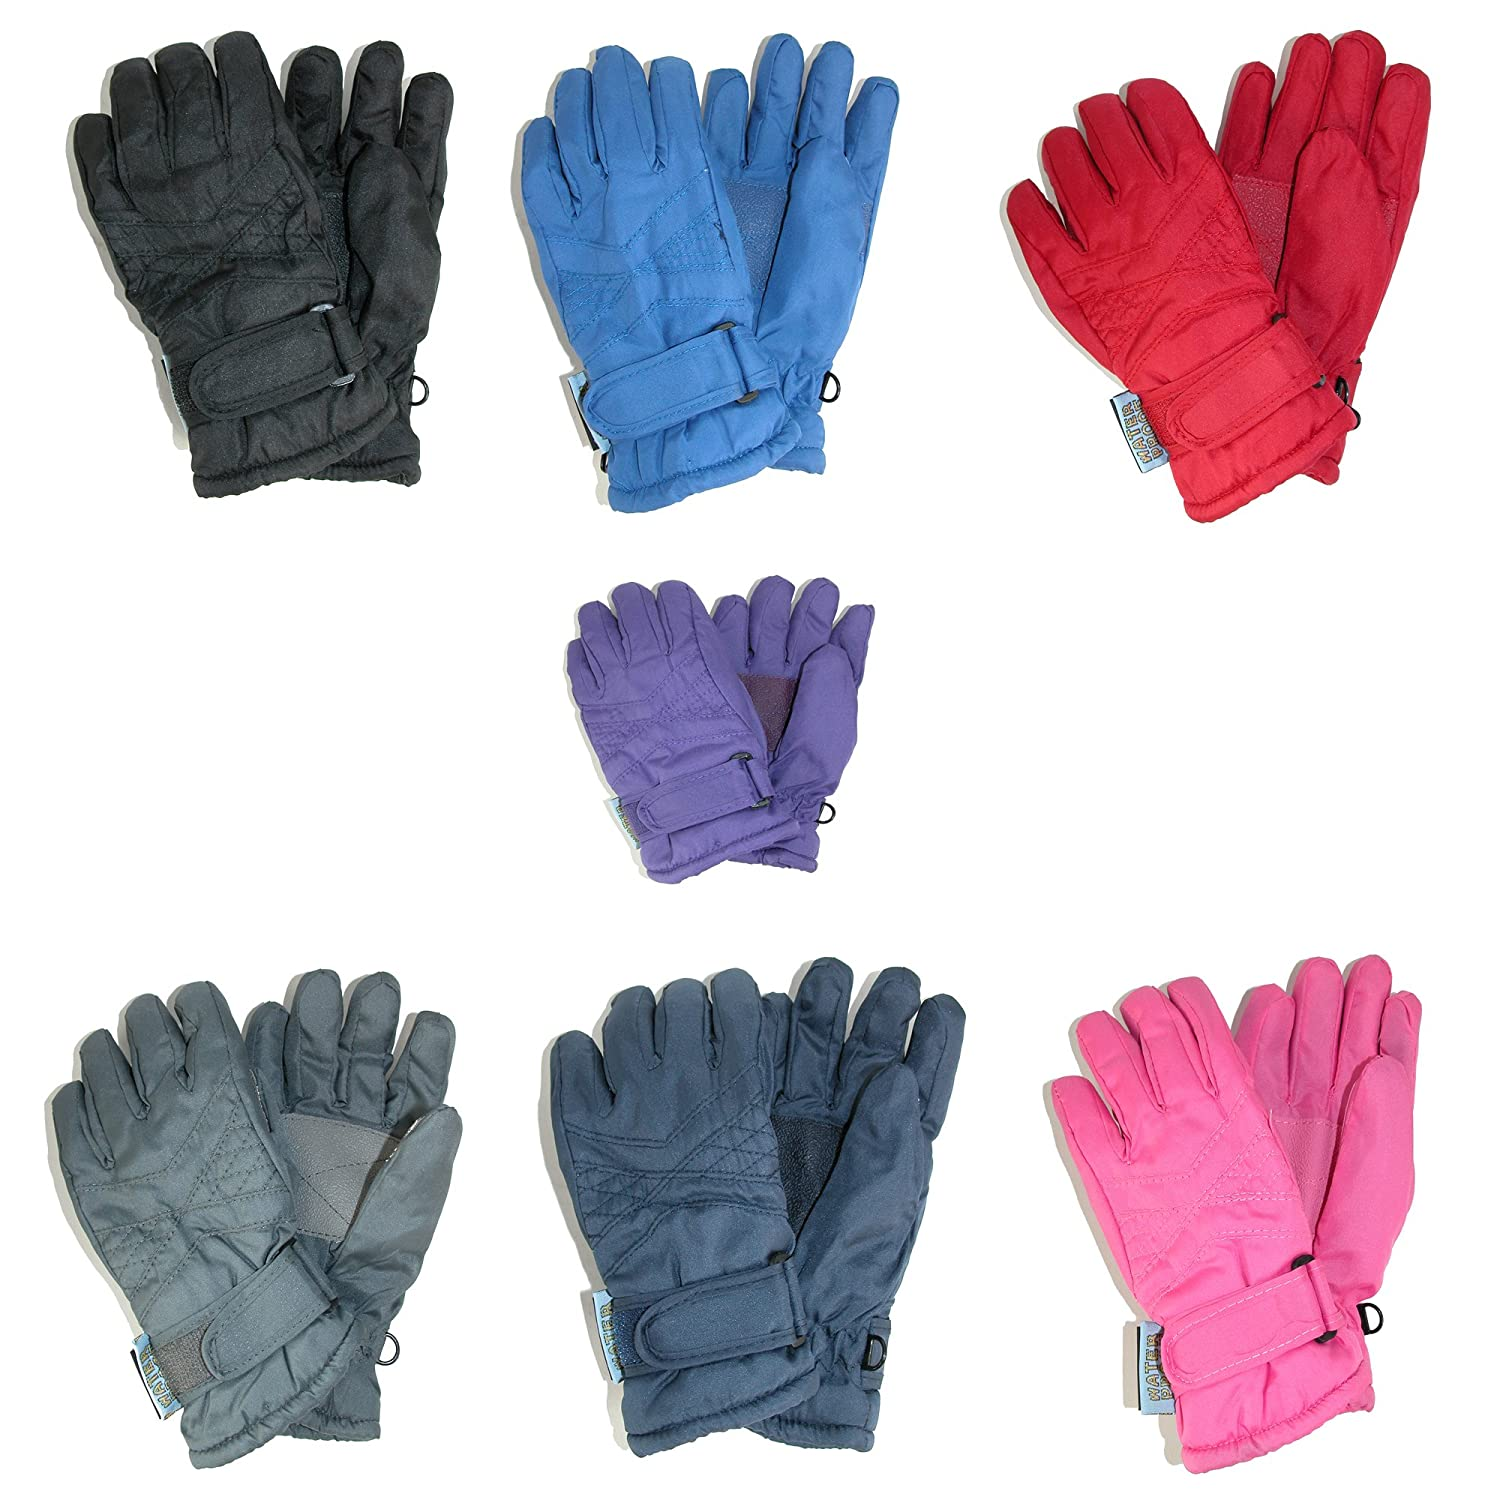 CTM® Toddlers Thinsulate Lined Water Resistant Winter Gloves, Purple RG-SK2942-PUR